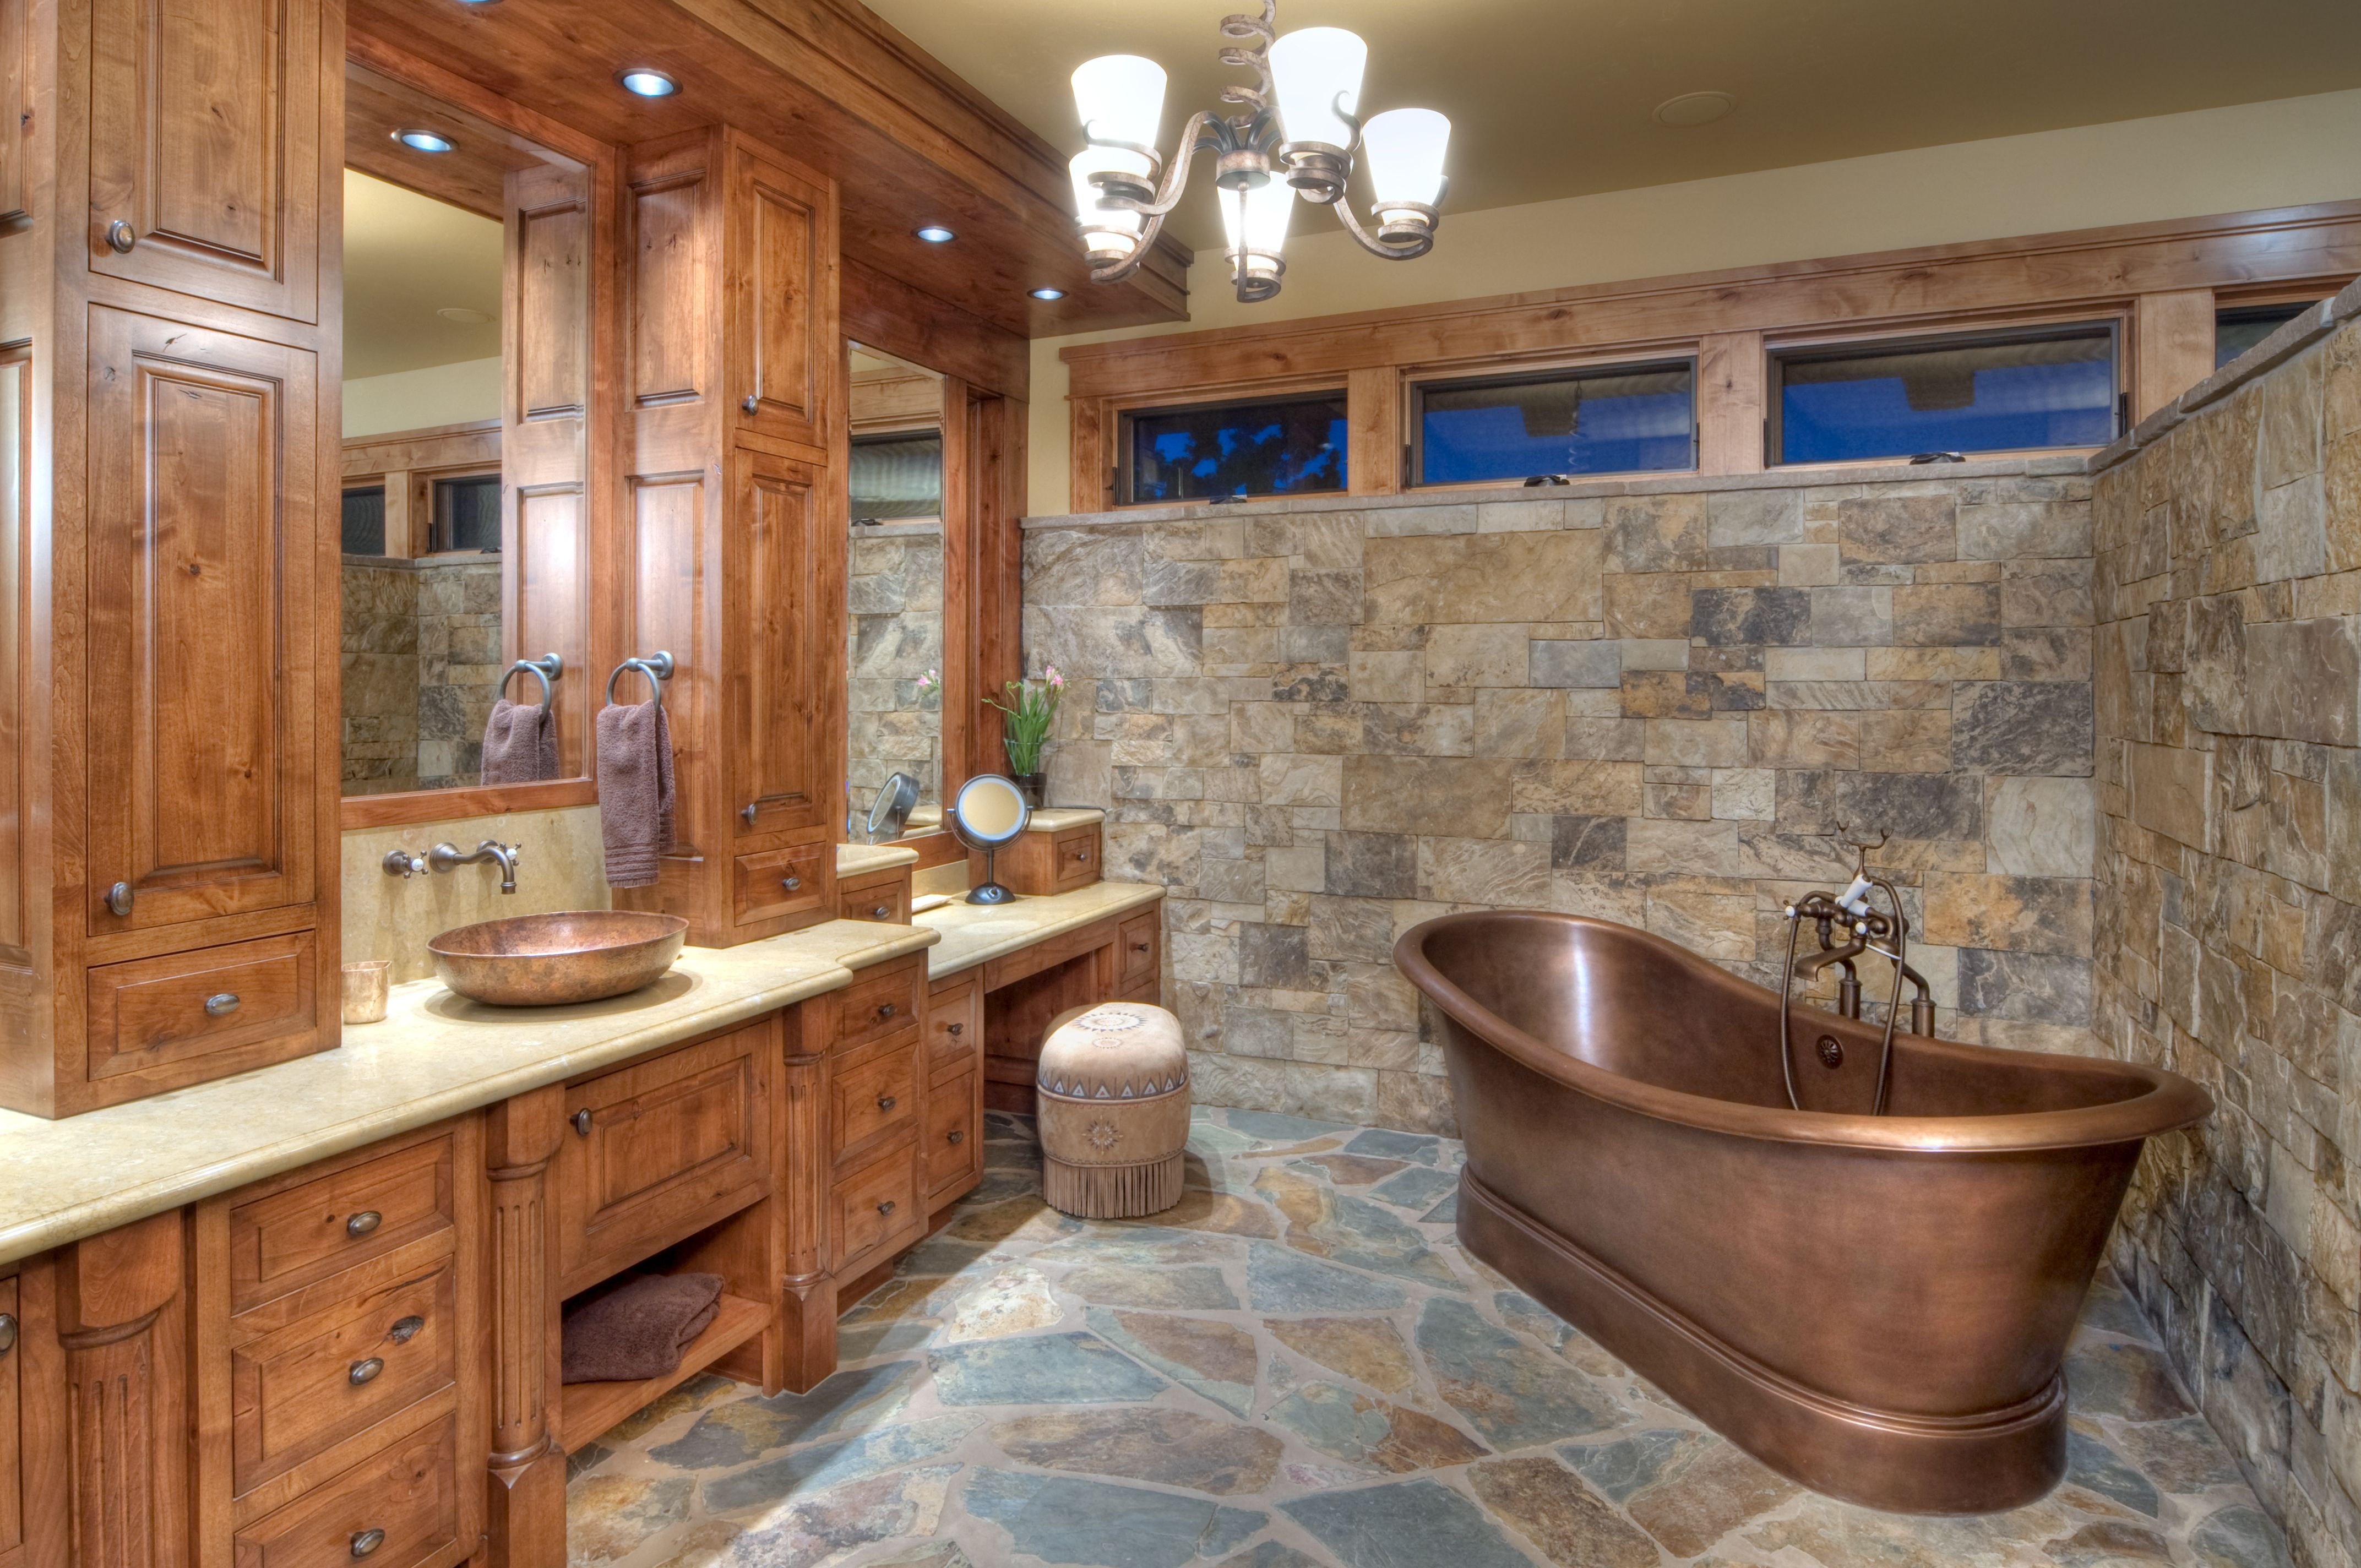 10 Basic Bathtub Styles You Should Know About